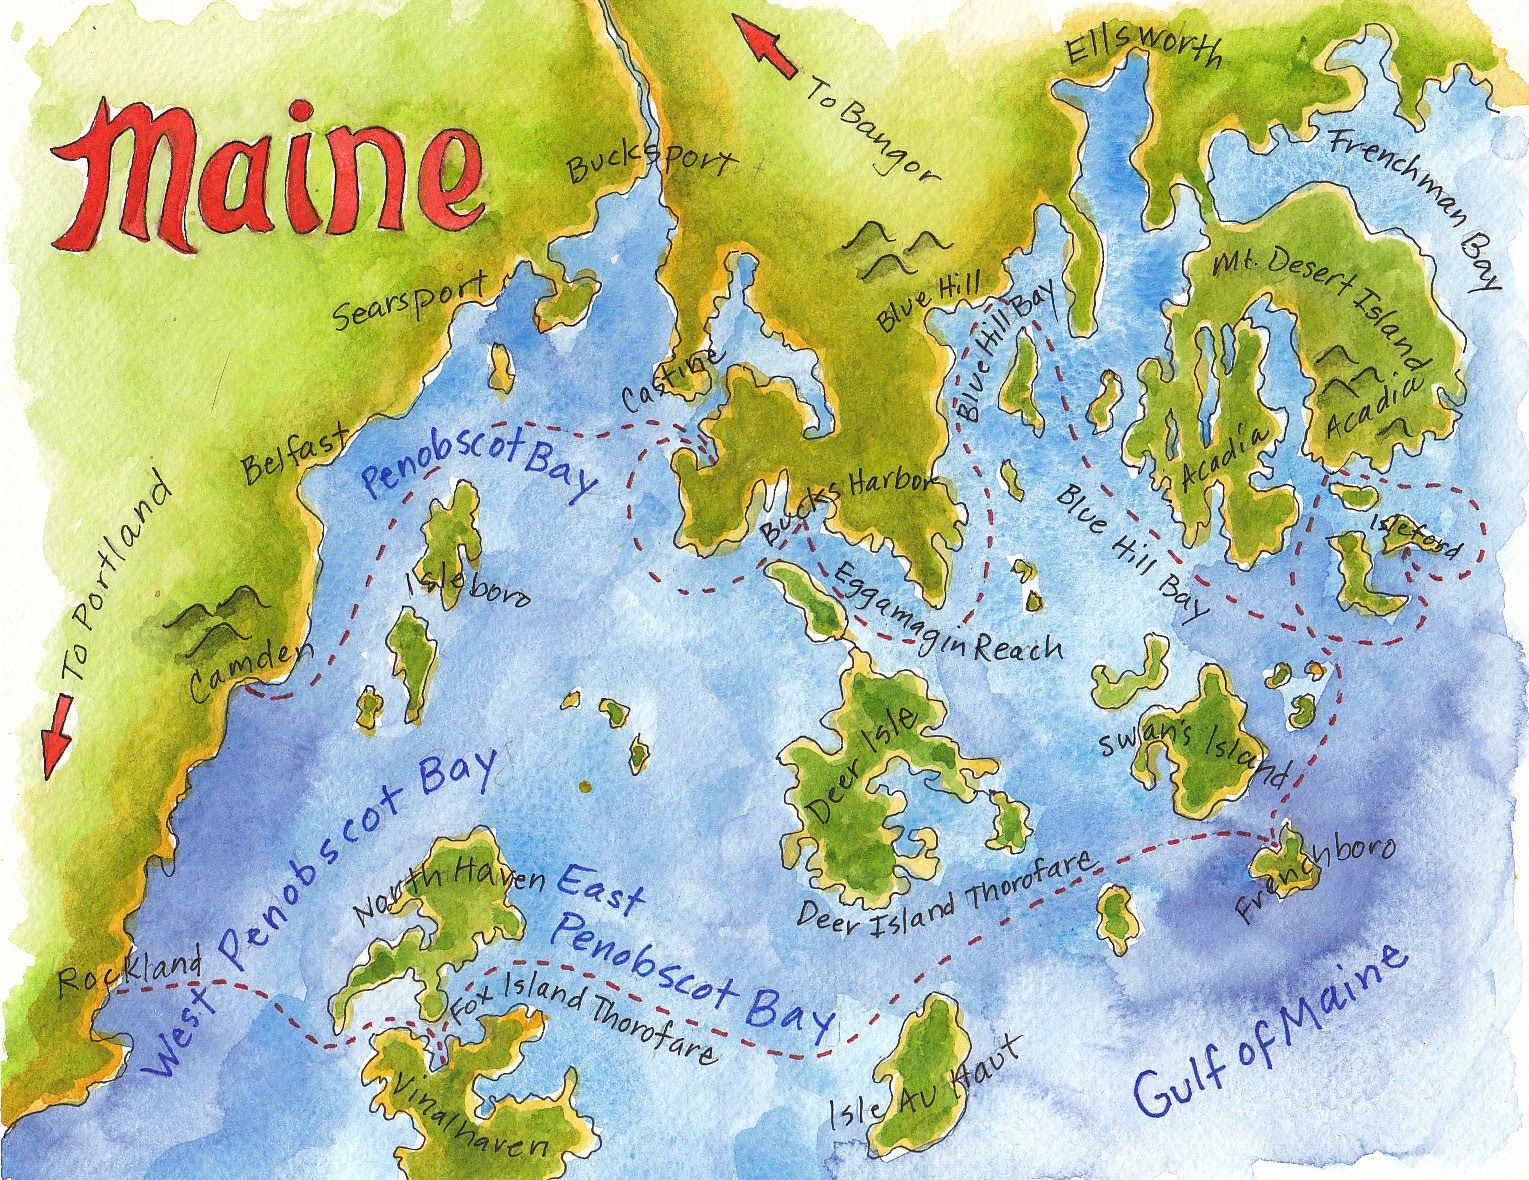 Penobscot Bay, Maine Coastal Map   My Neck of the Woods